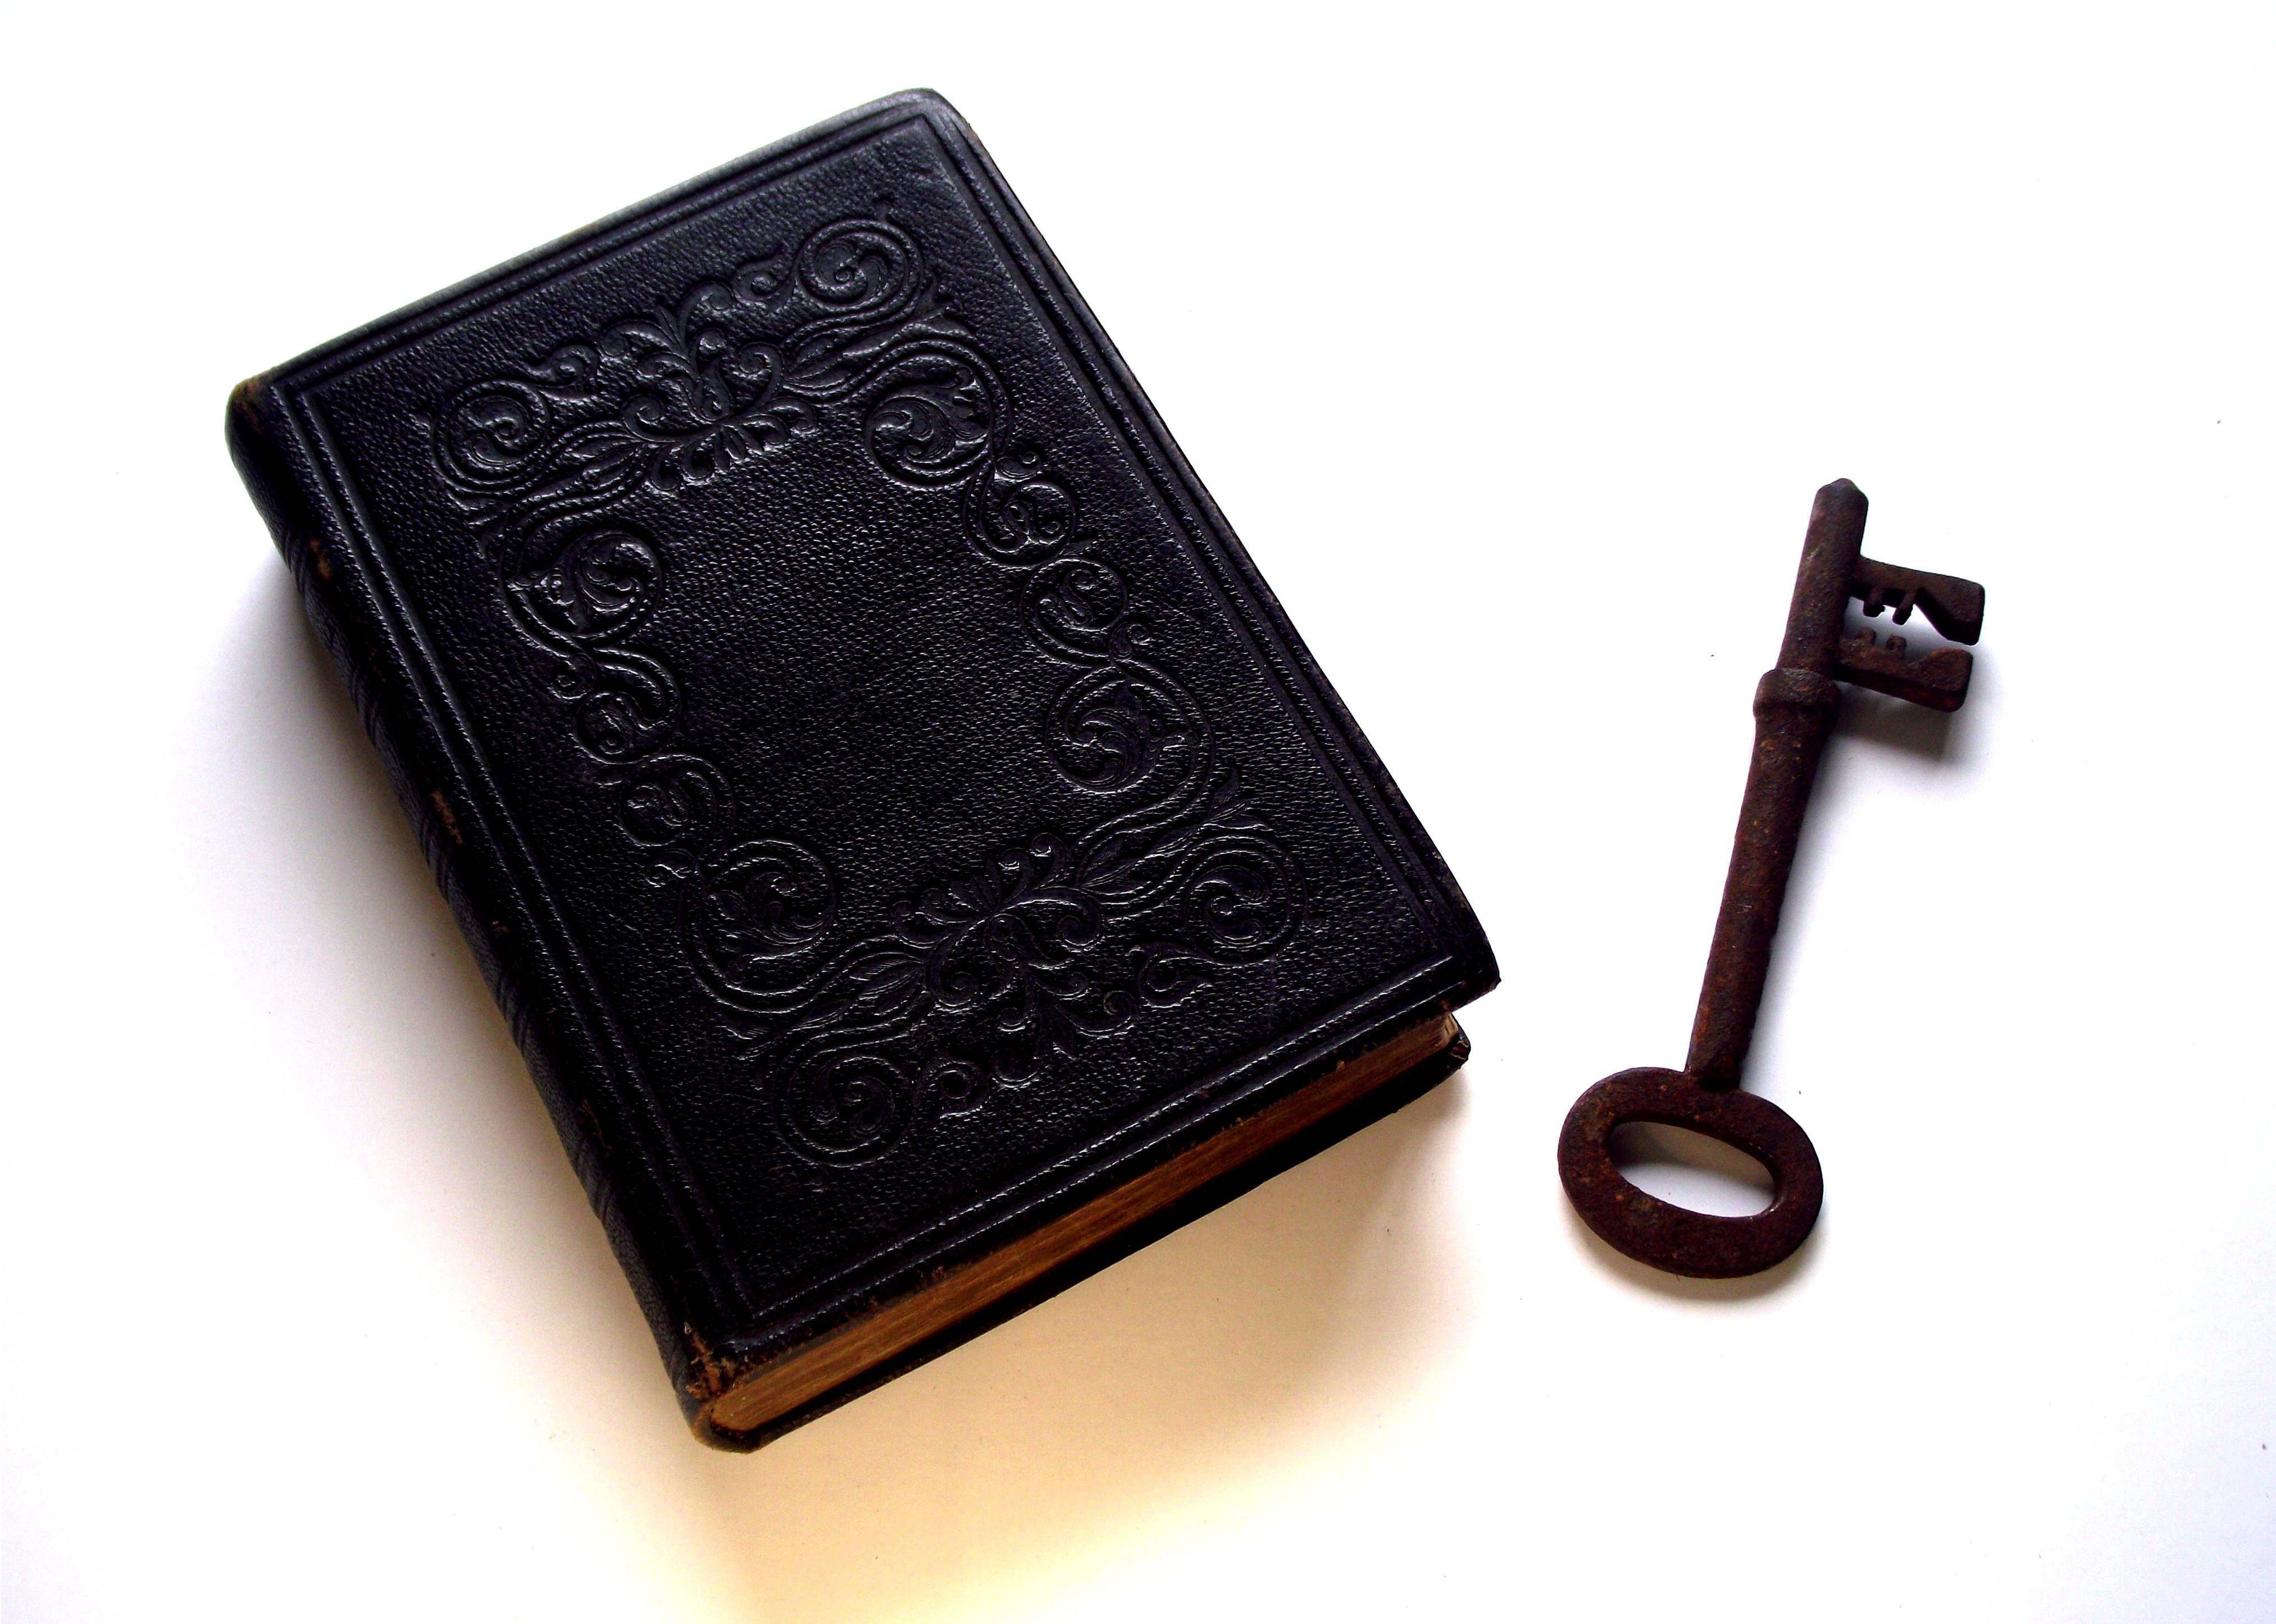 Bible_and_Key_Divination